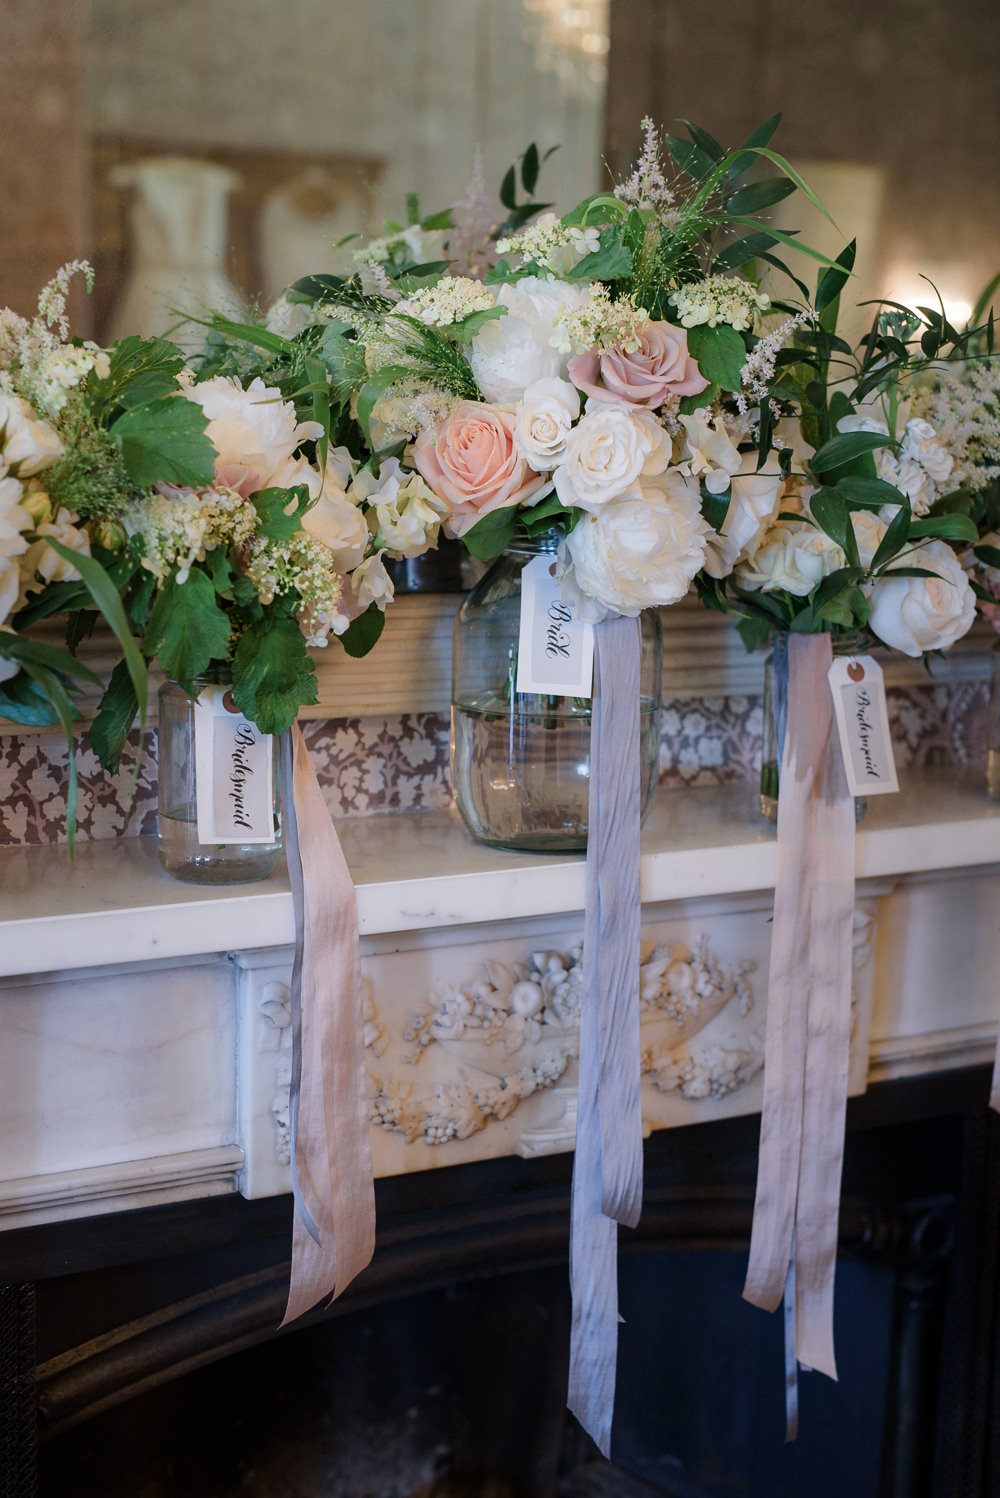 Bouquets Bride Bridal Bridesmaids Blush Roses Greenery Ribbons Silk Babington House Wedding Ria Mishaal Photography